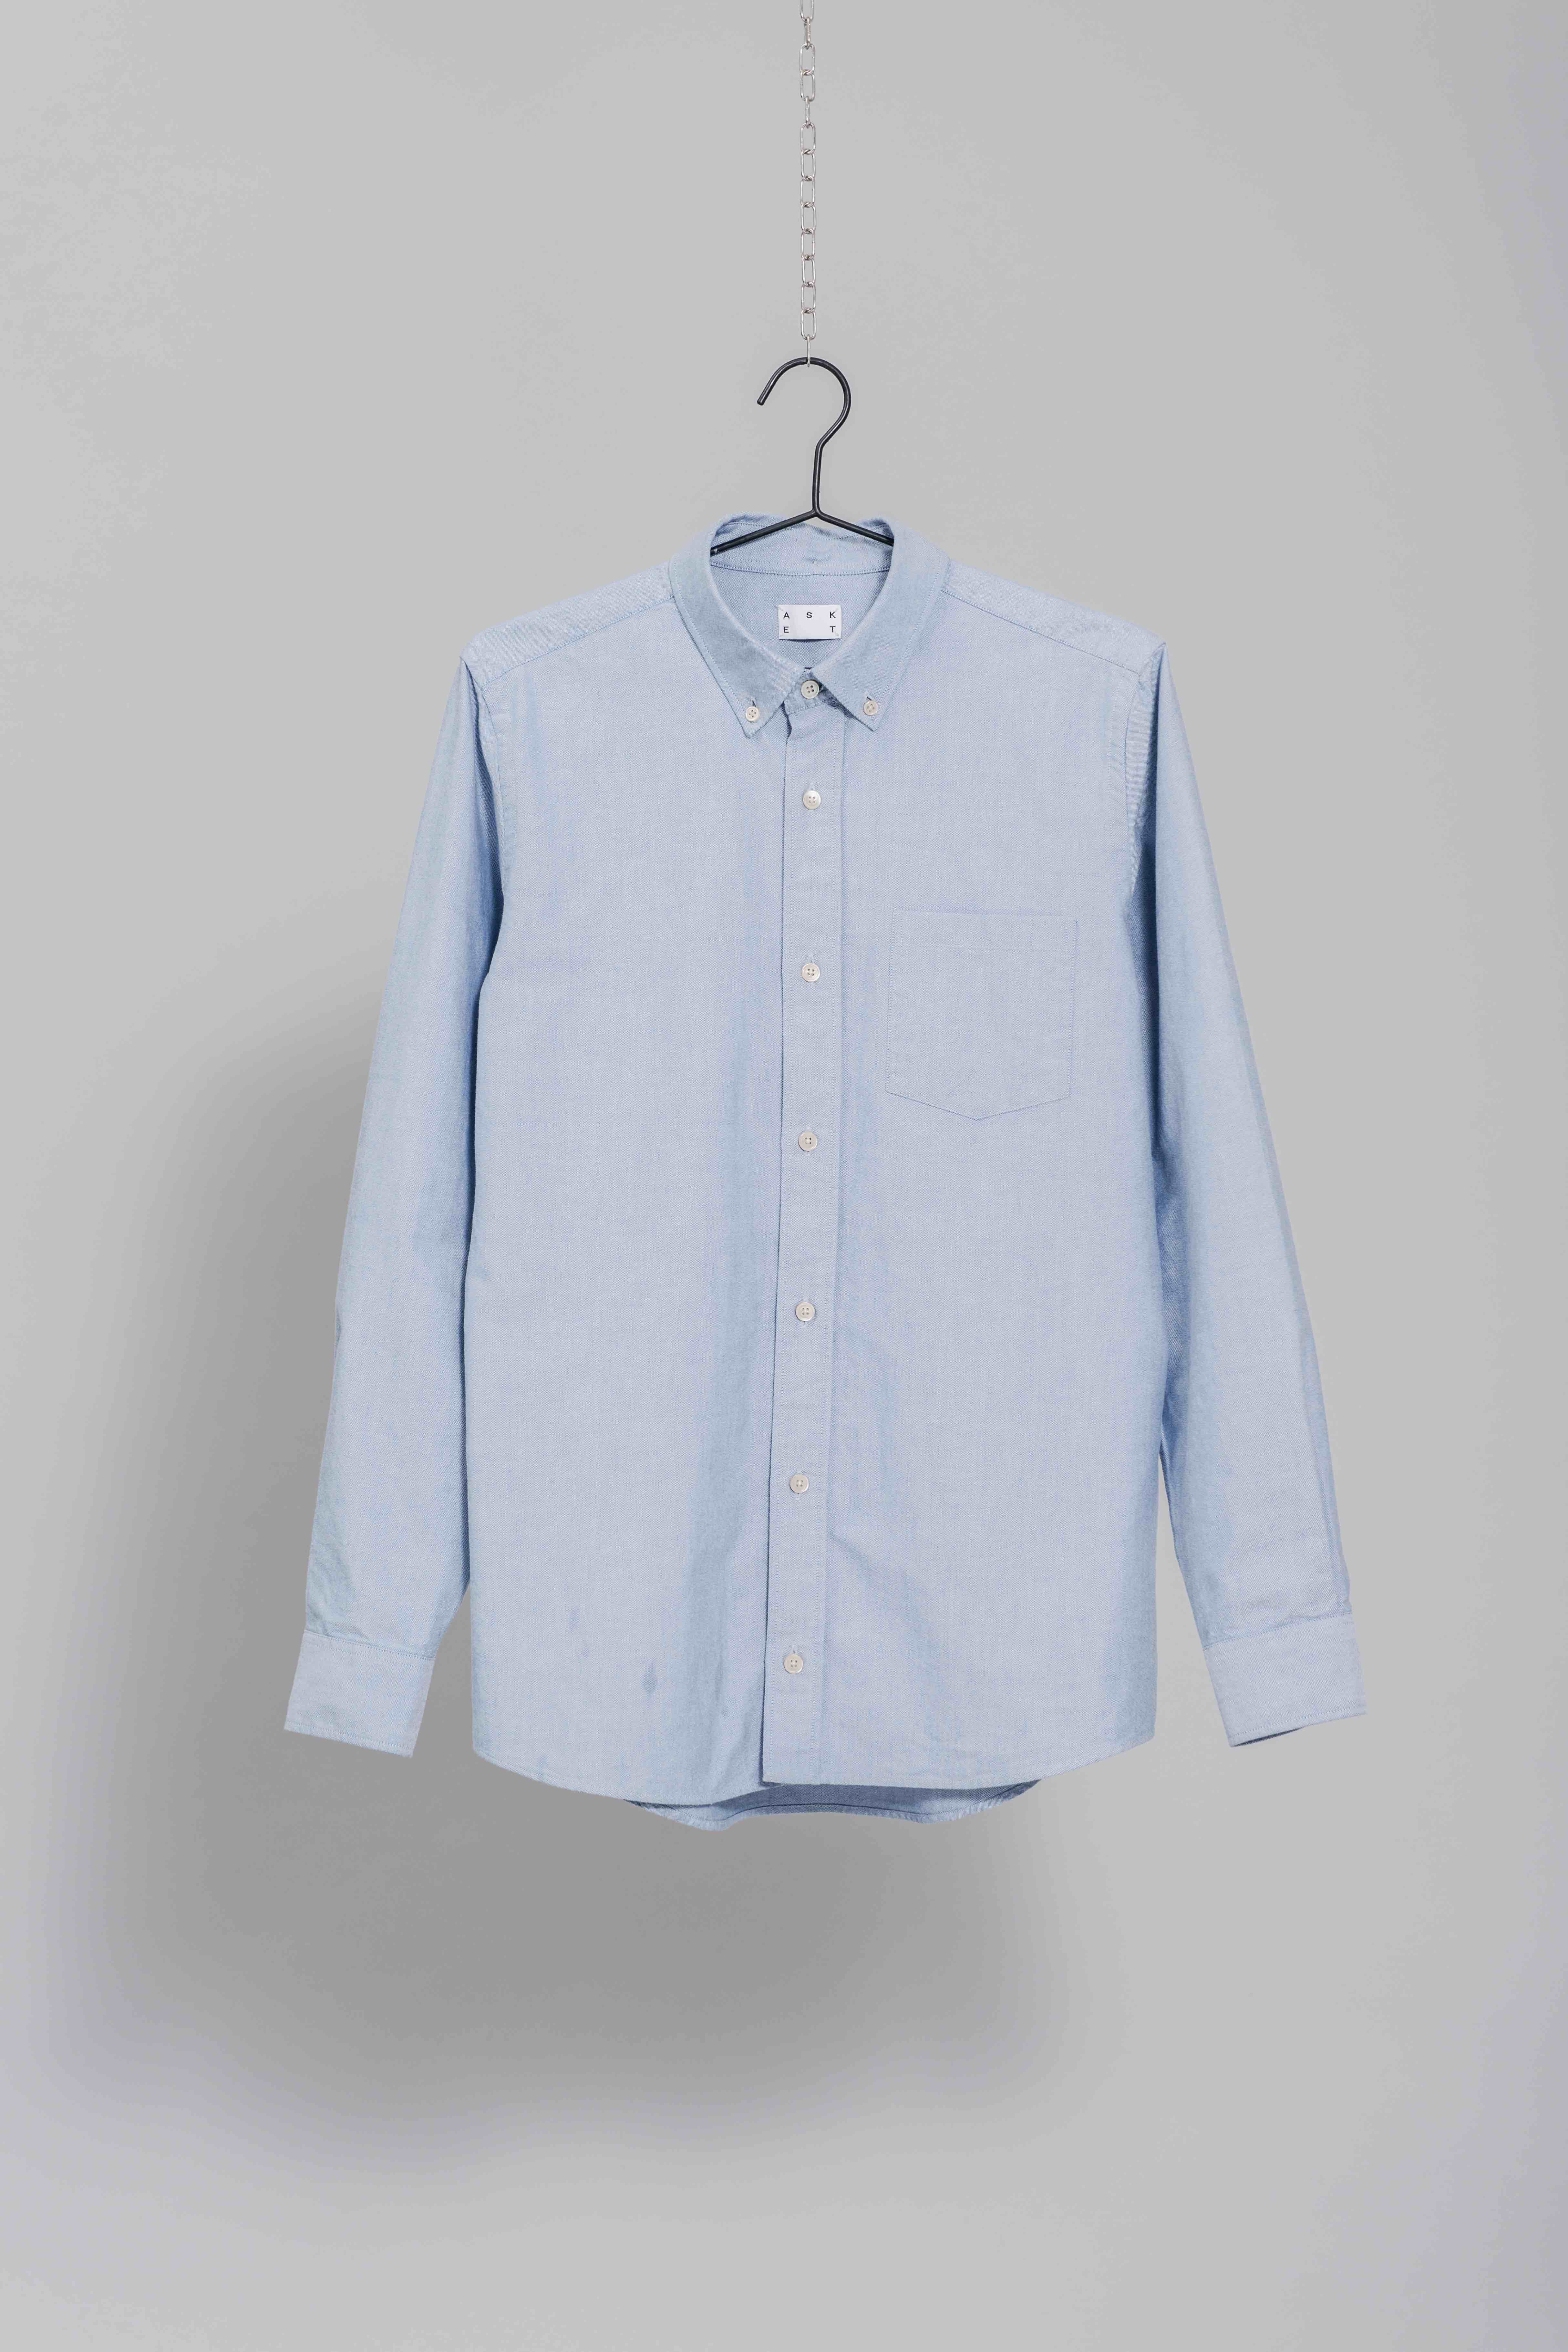 b079ba29f88 The ASKET Oxford Shirt in Blue